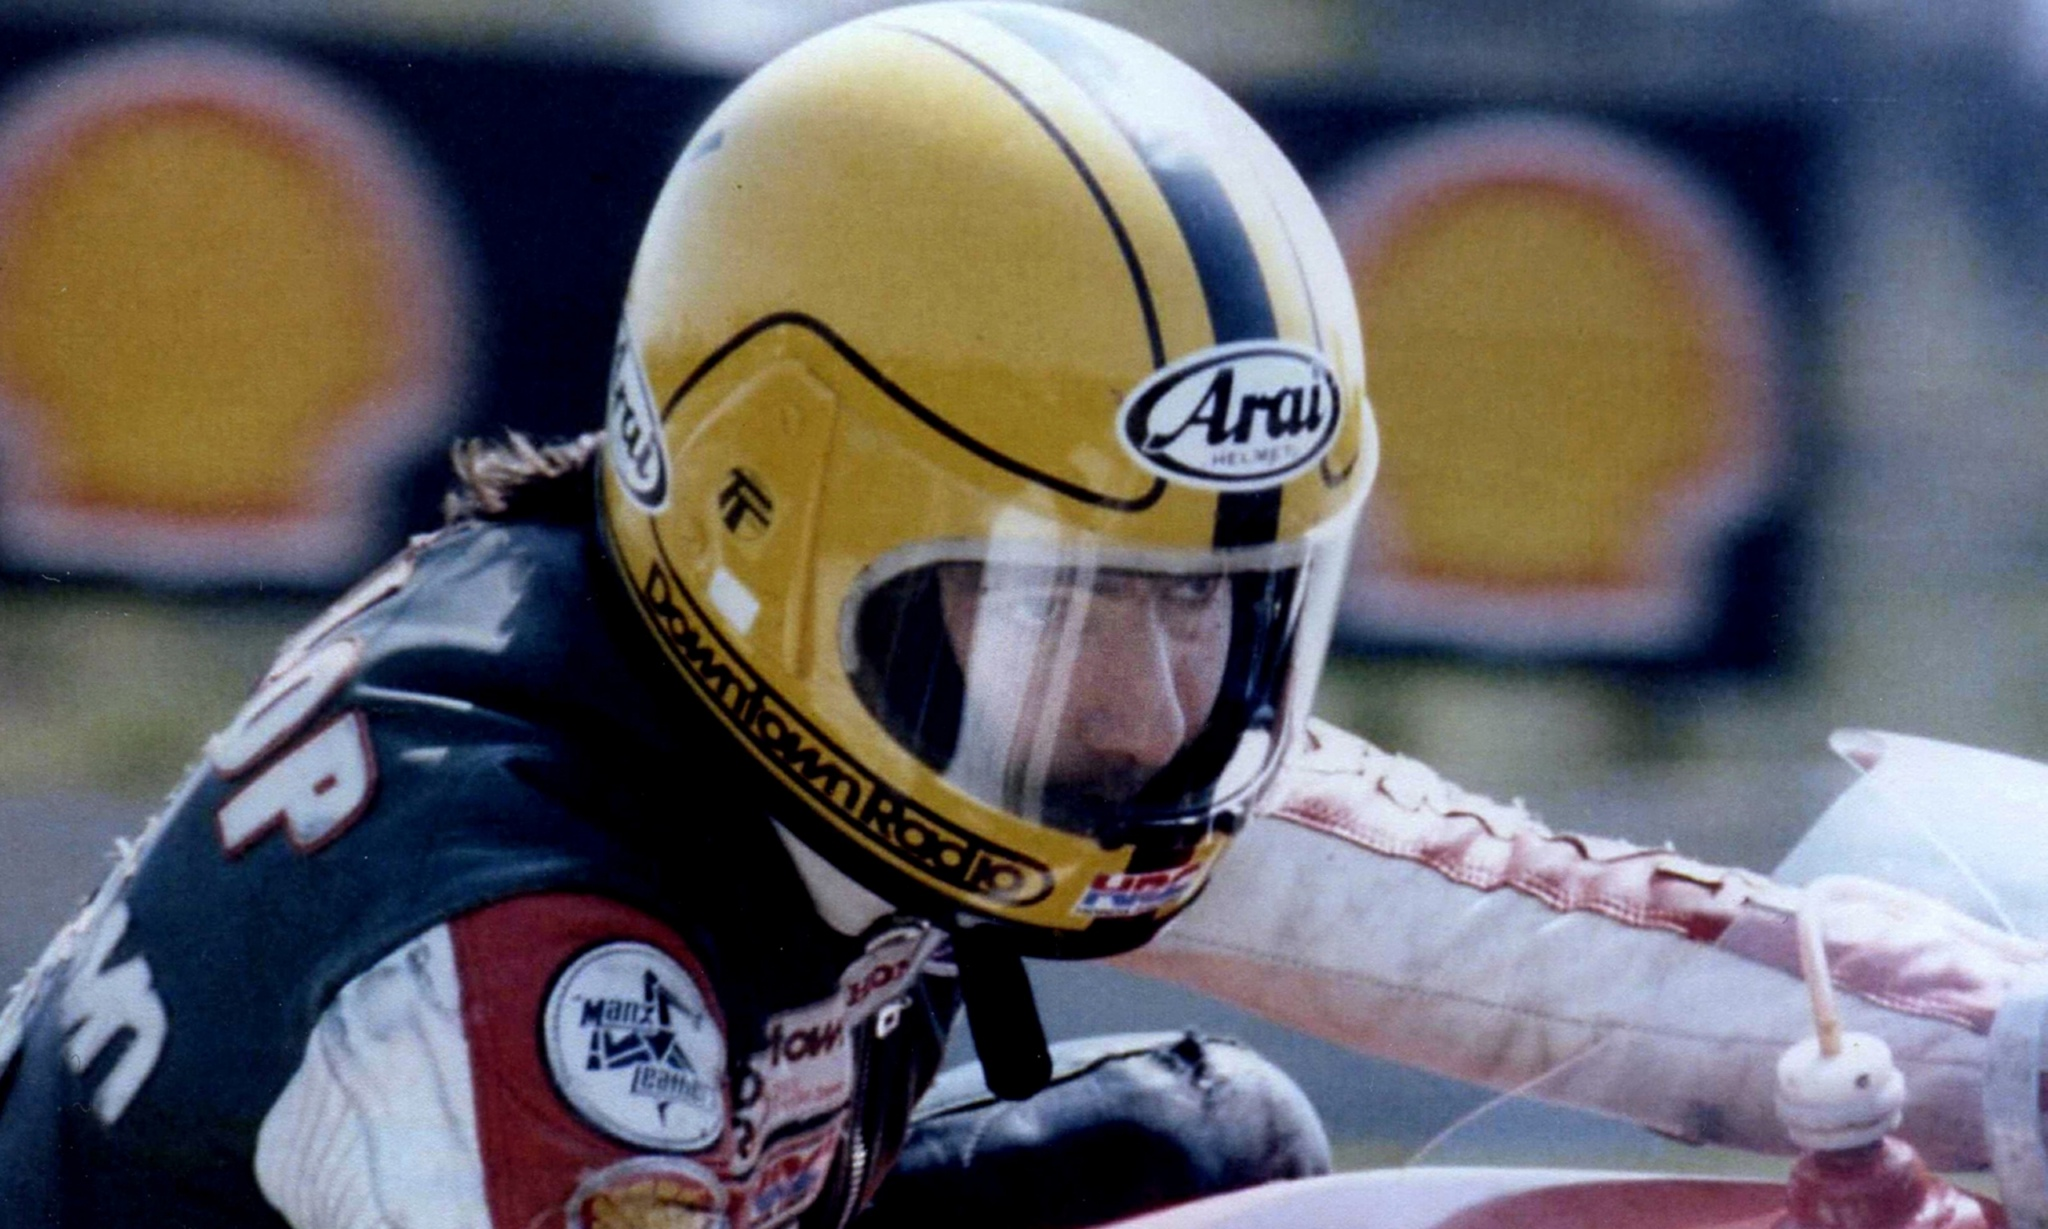 Arai Reveals Joey Dunlop Limited Run Tribute Helmet